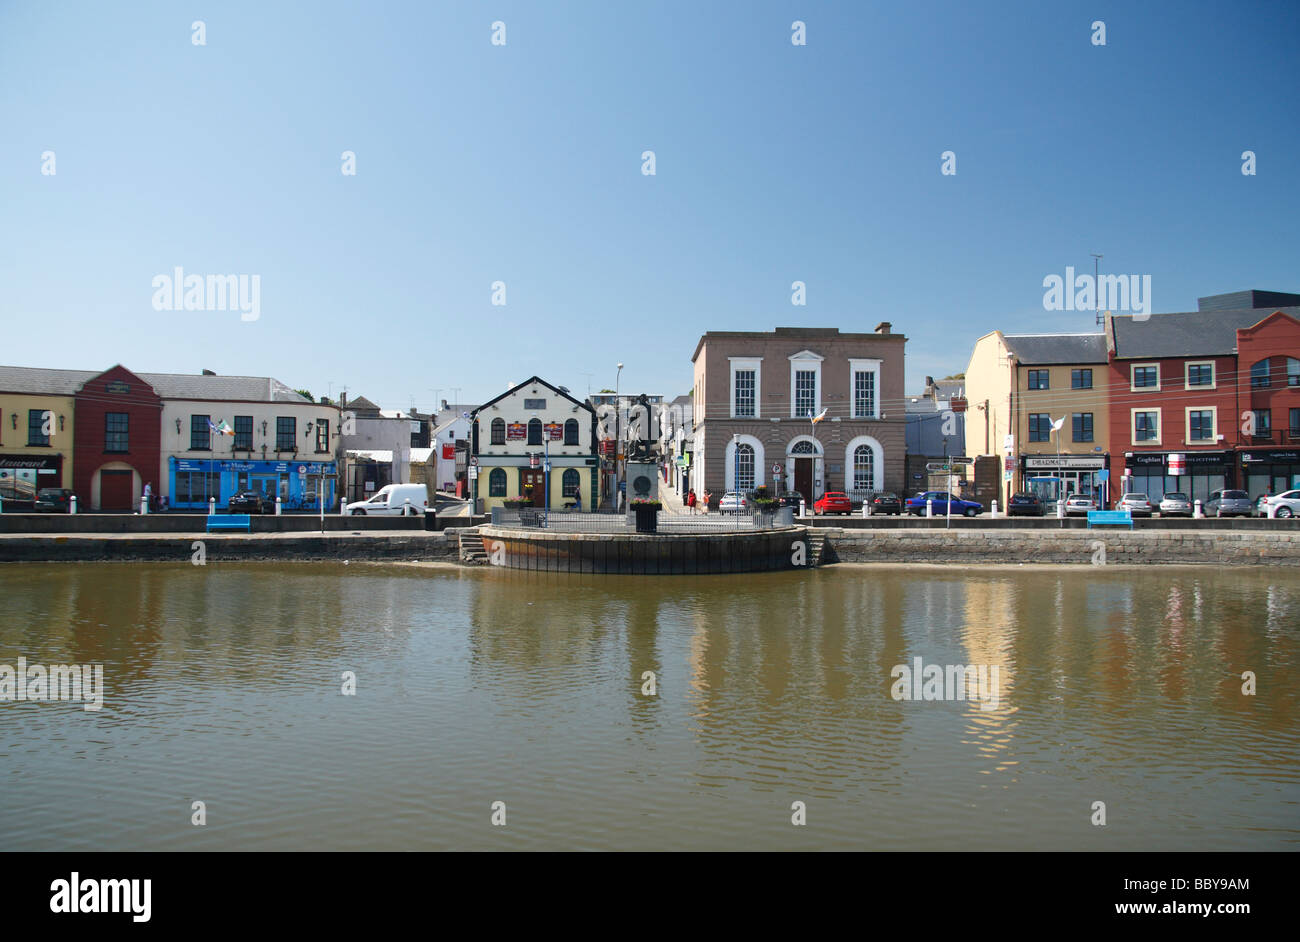 Wexford county stock photos wexford county stock images for The wexford